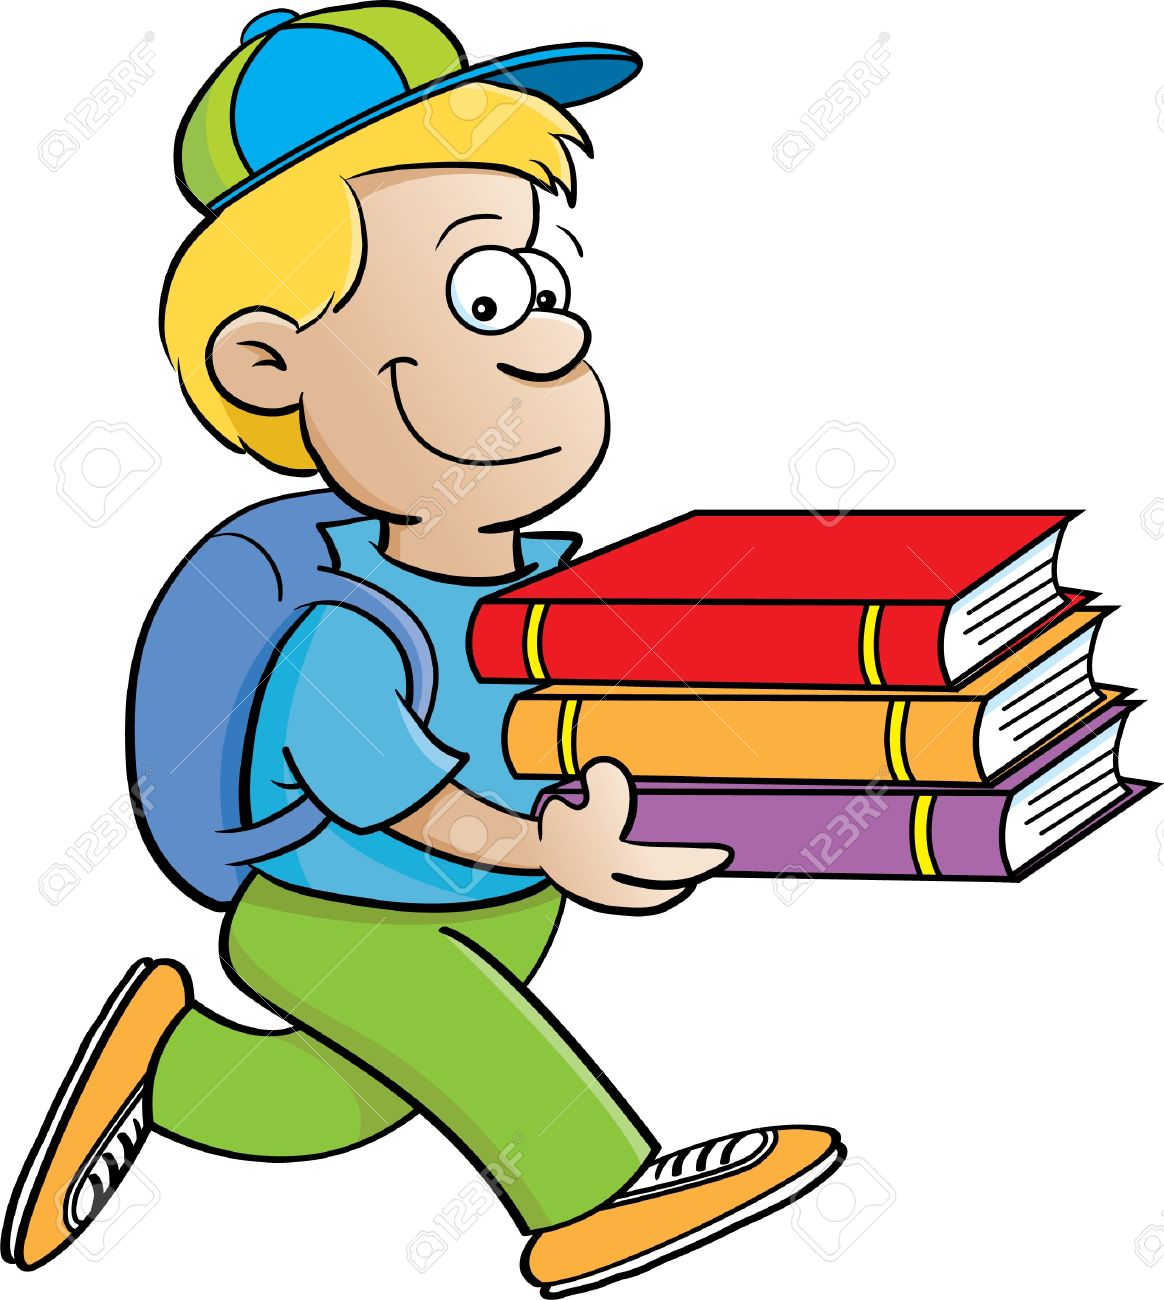 Boy with books clipart. Carrying clipartfest of a